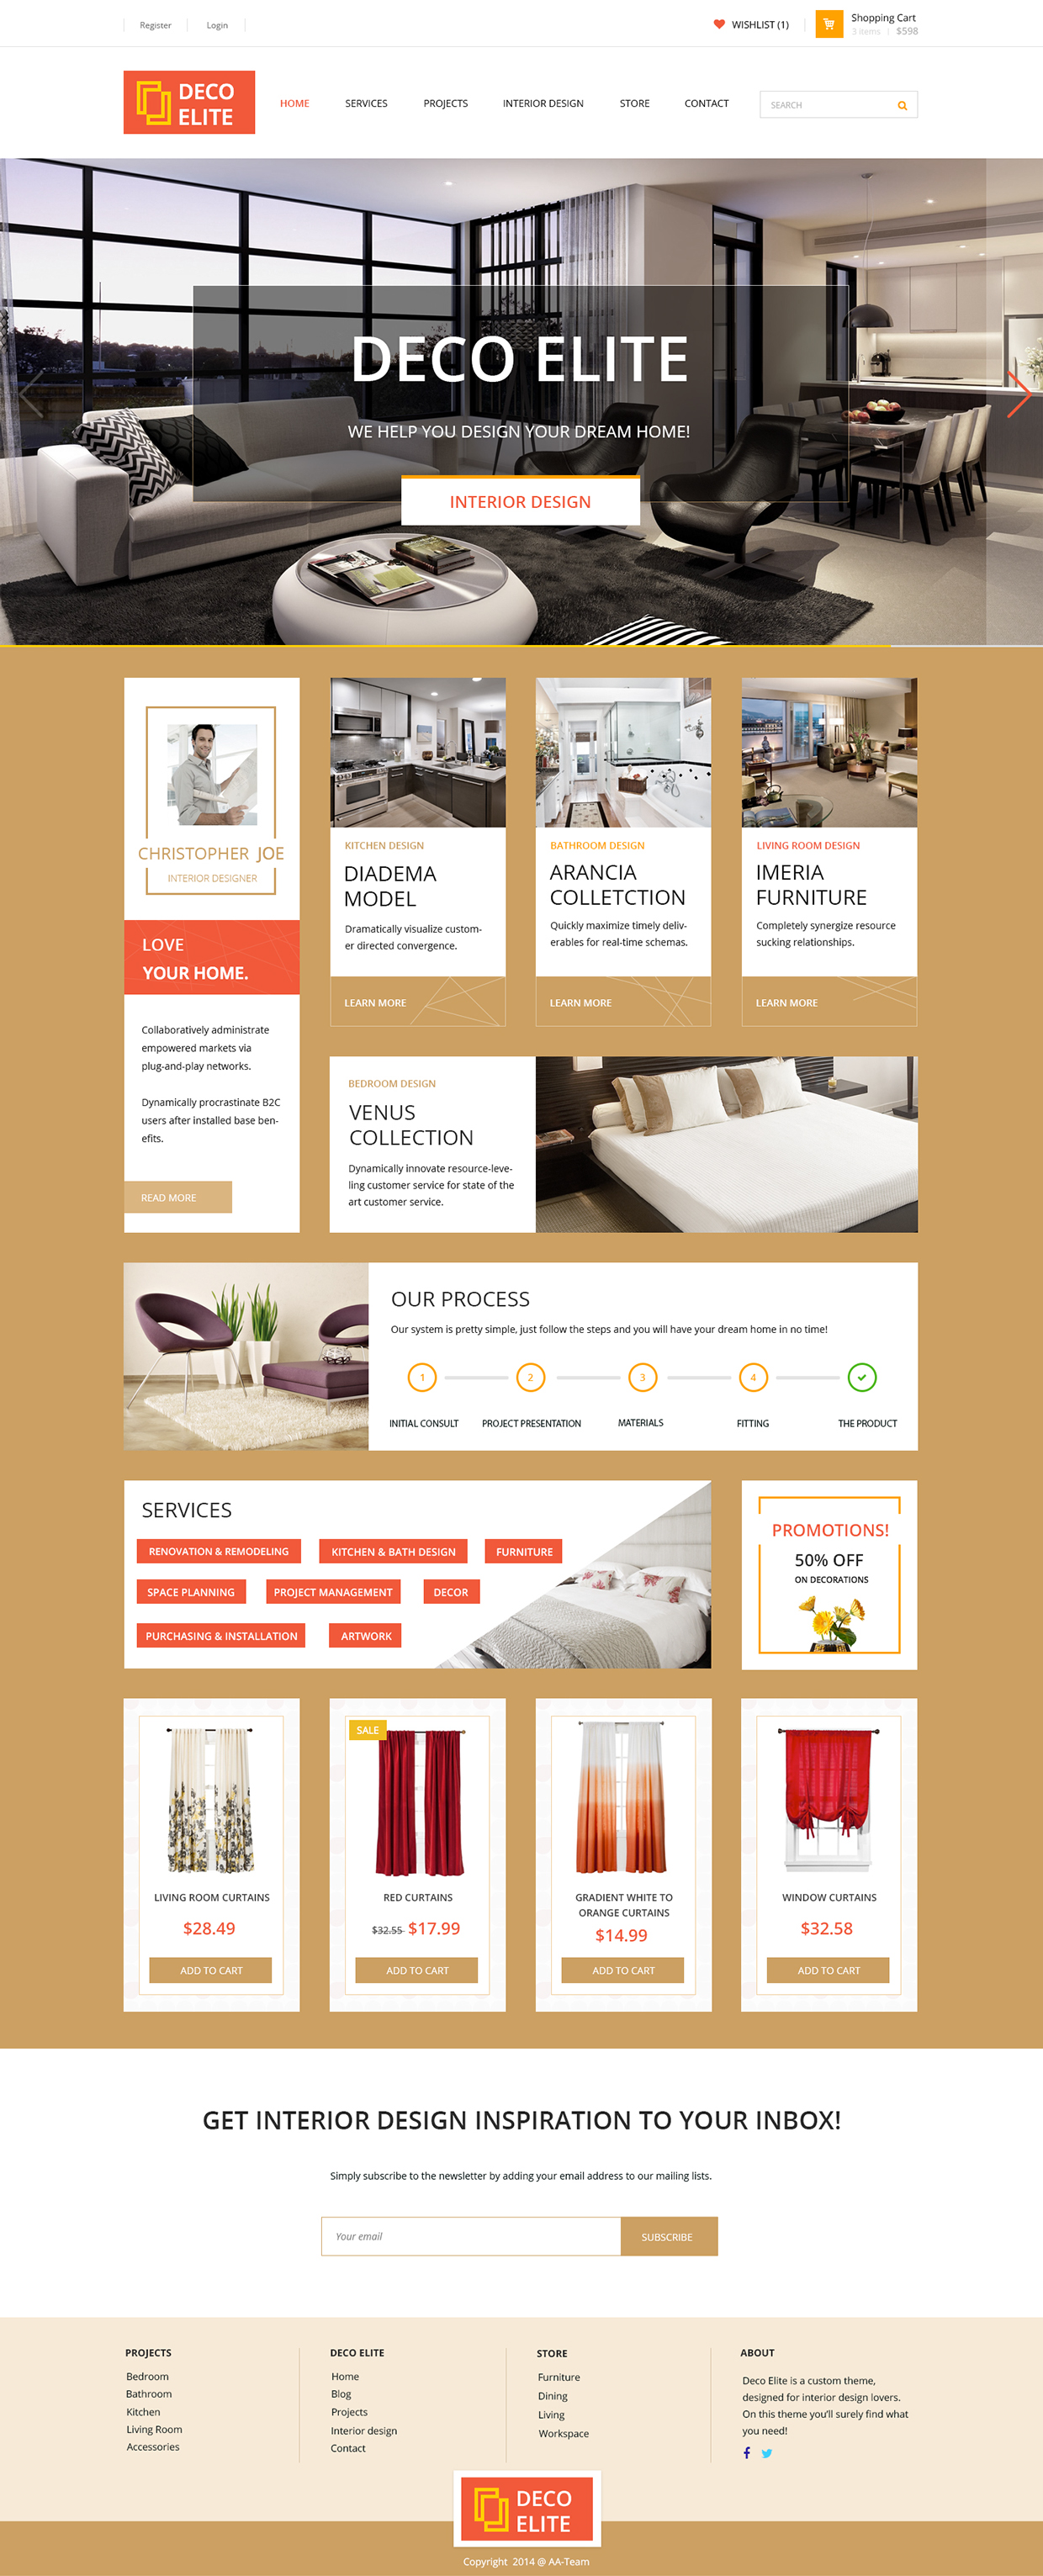 Deco-Elite-Multipurpose-Interior-Design-Template